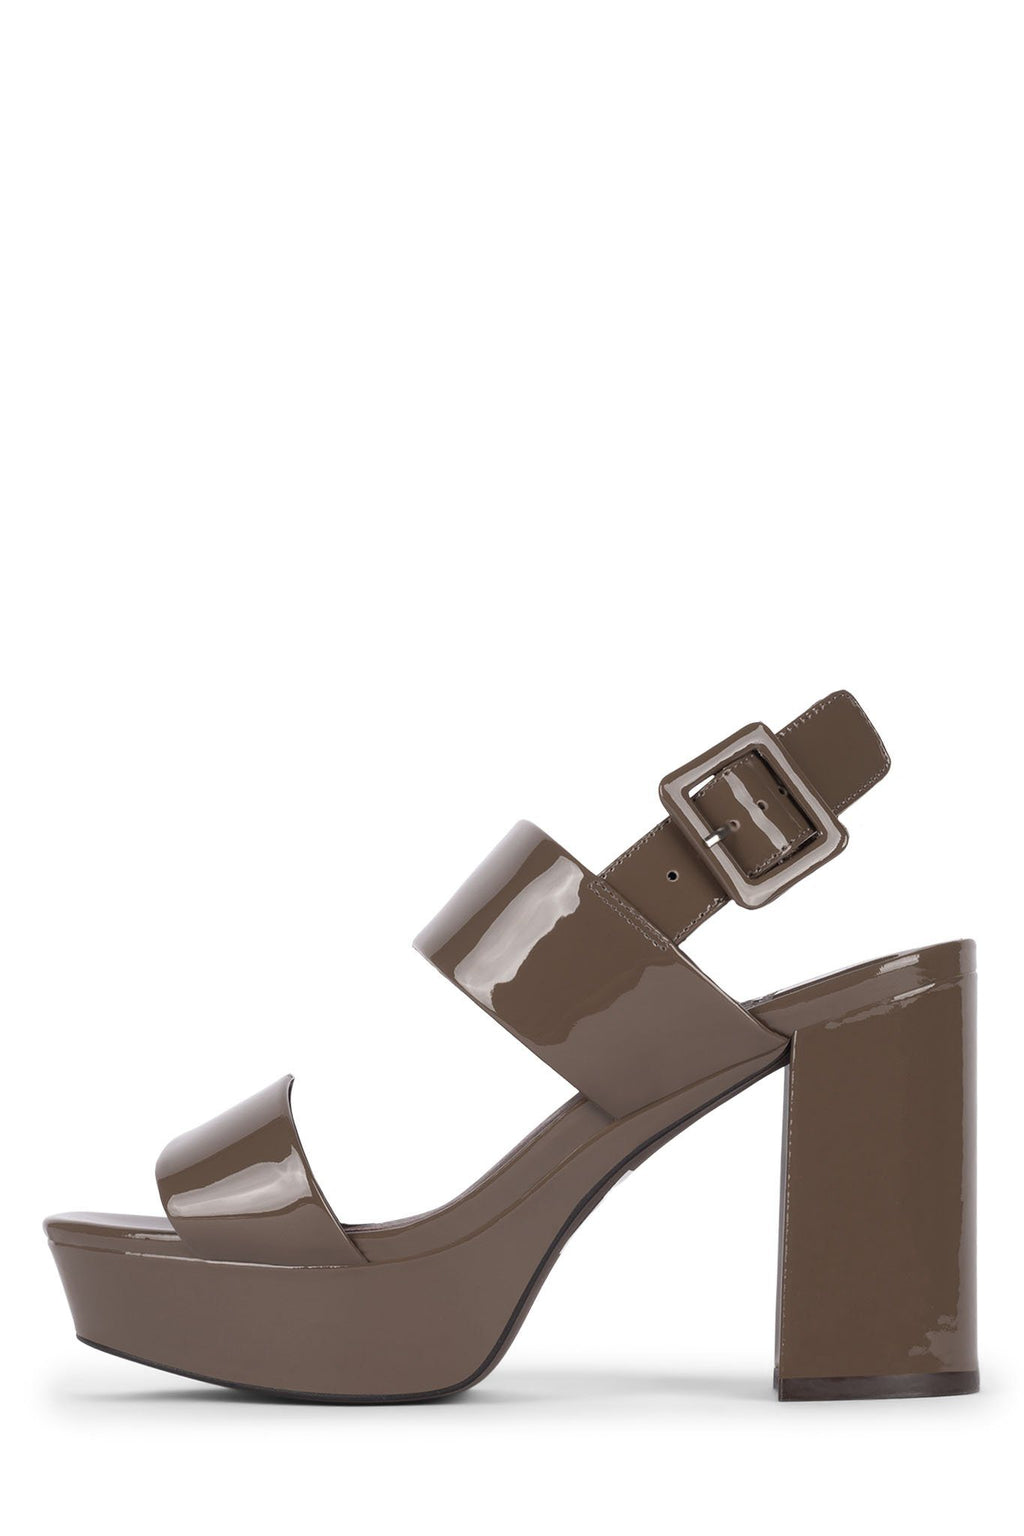 AMMALY Jeffrey Campbell Taupe Patent 5